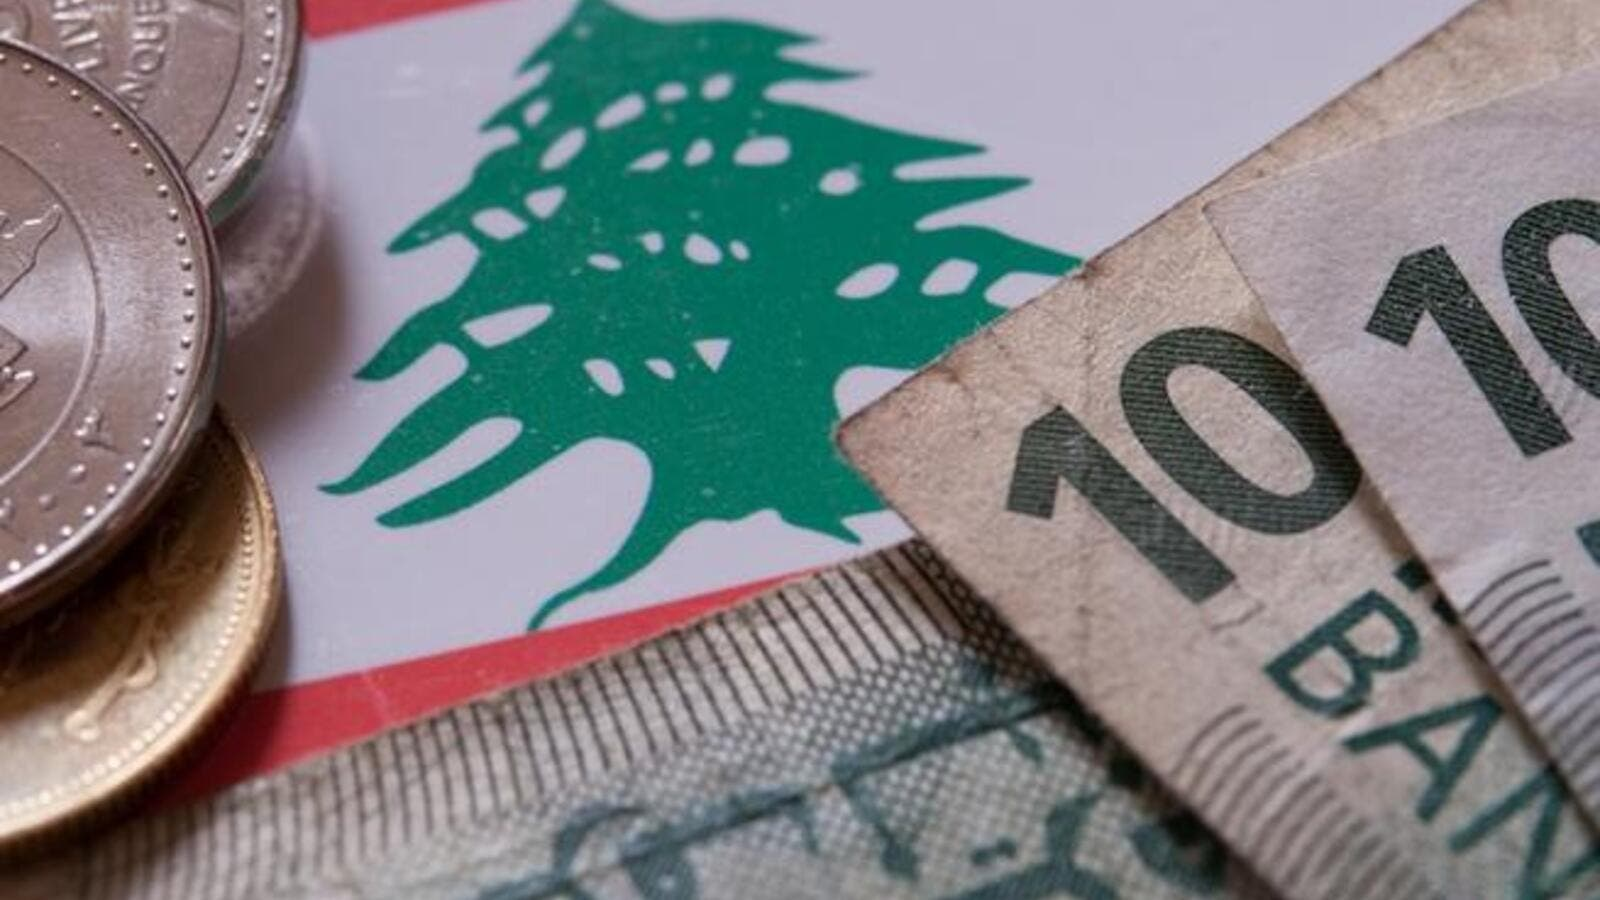 Lebanon's public debt as at the end of June climbed by 0.7 percent to $85.7 billion compared to the end of last year, figures released by the Finance Ministry showed.